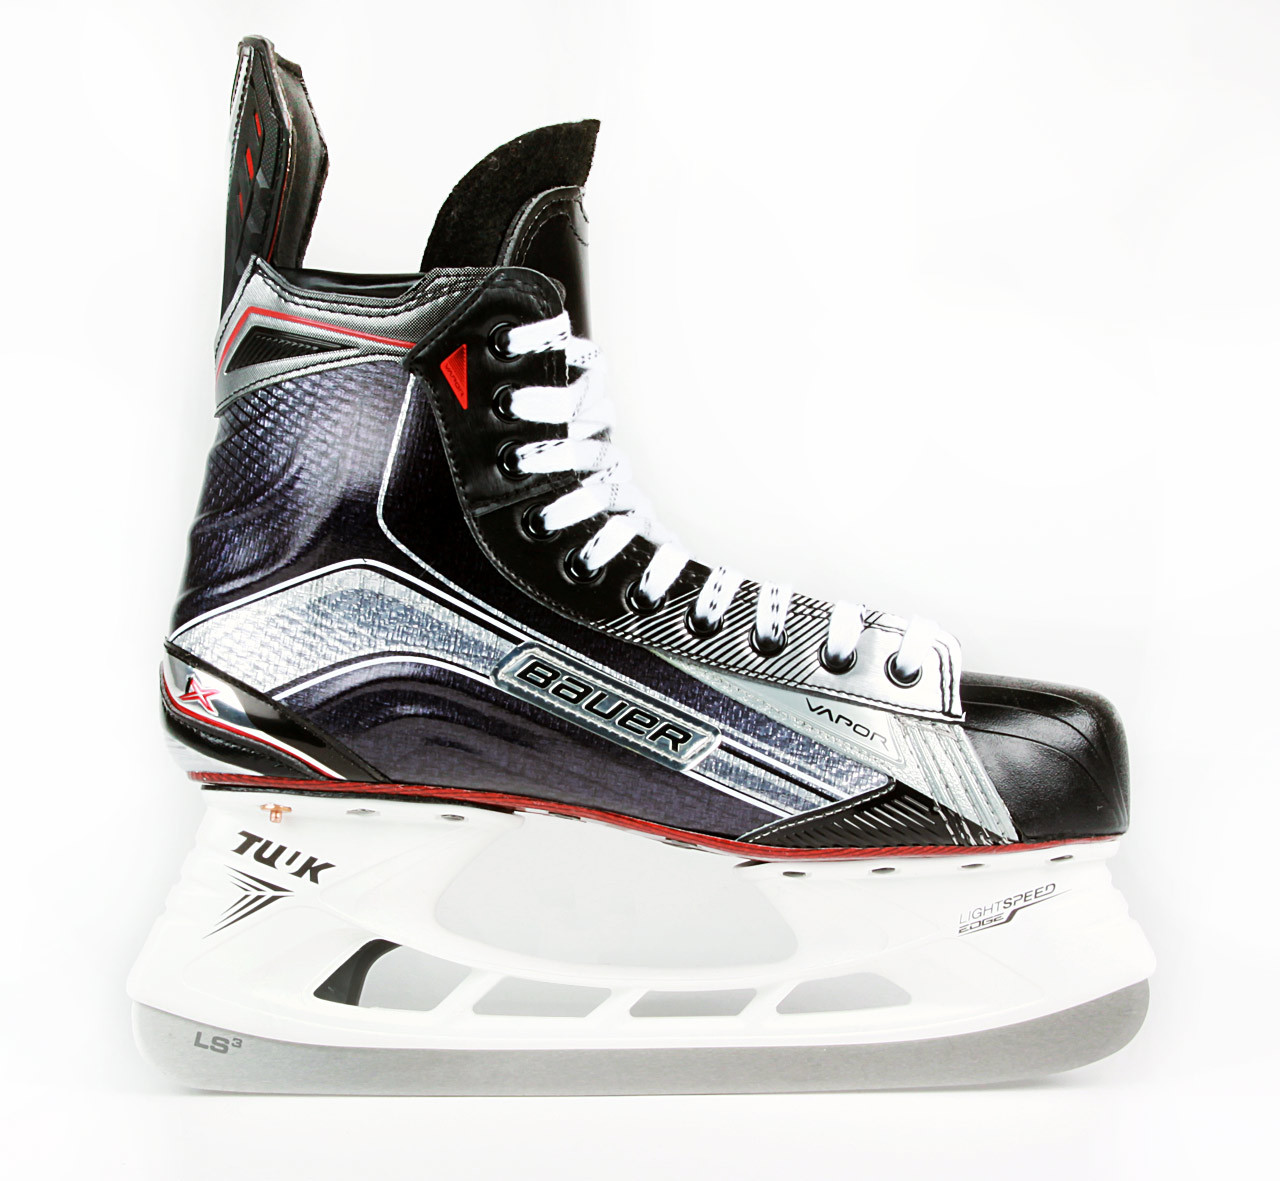 Best Hockey Skates: 2017-2018 Season - Pro Stock Hockey